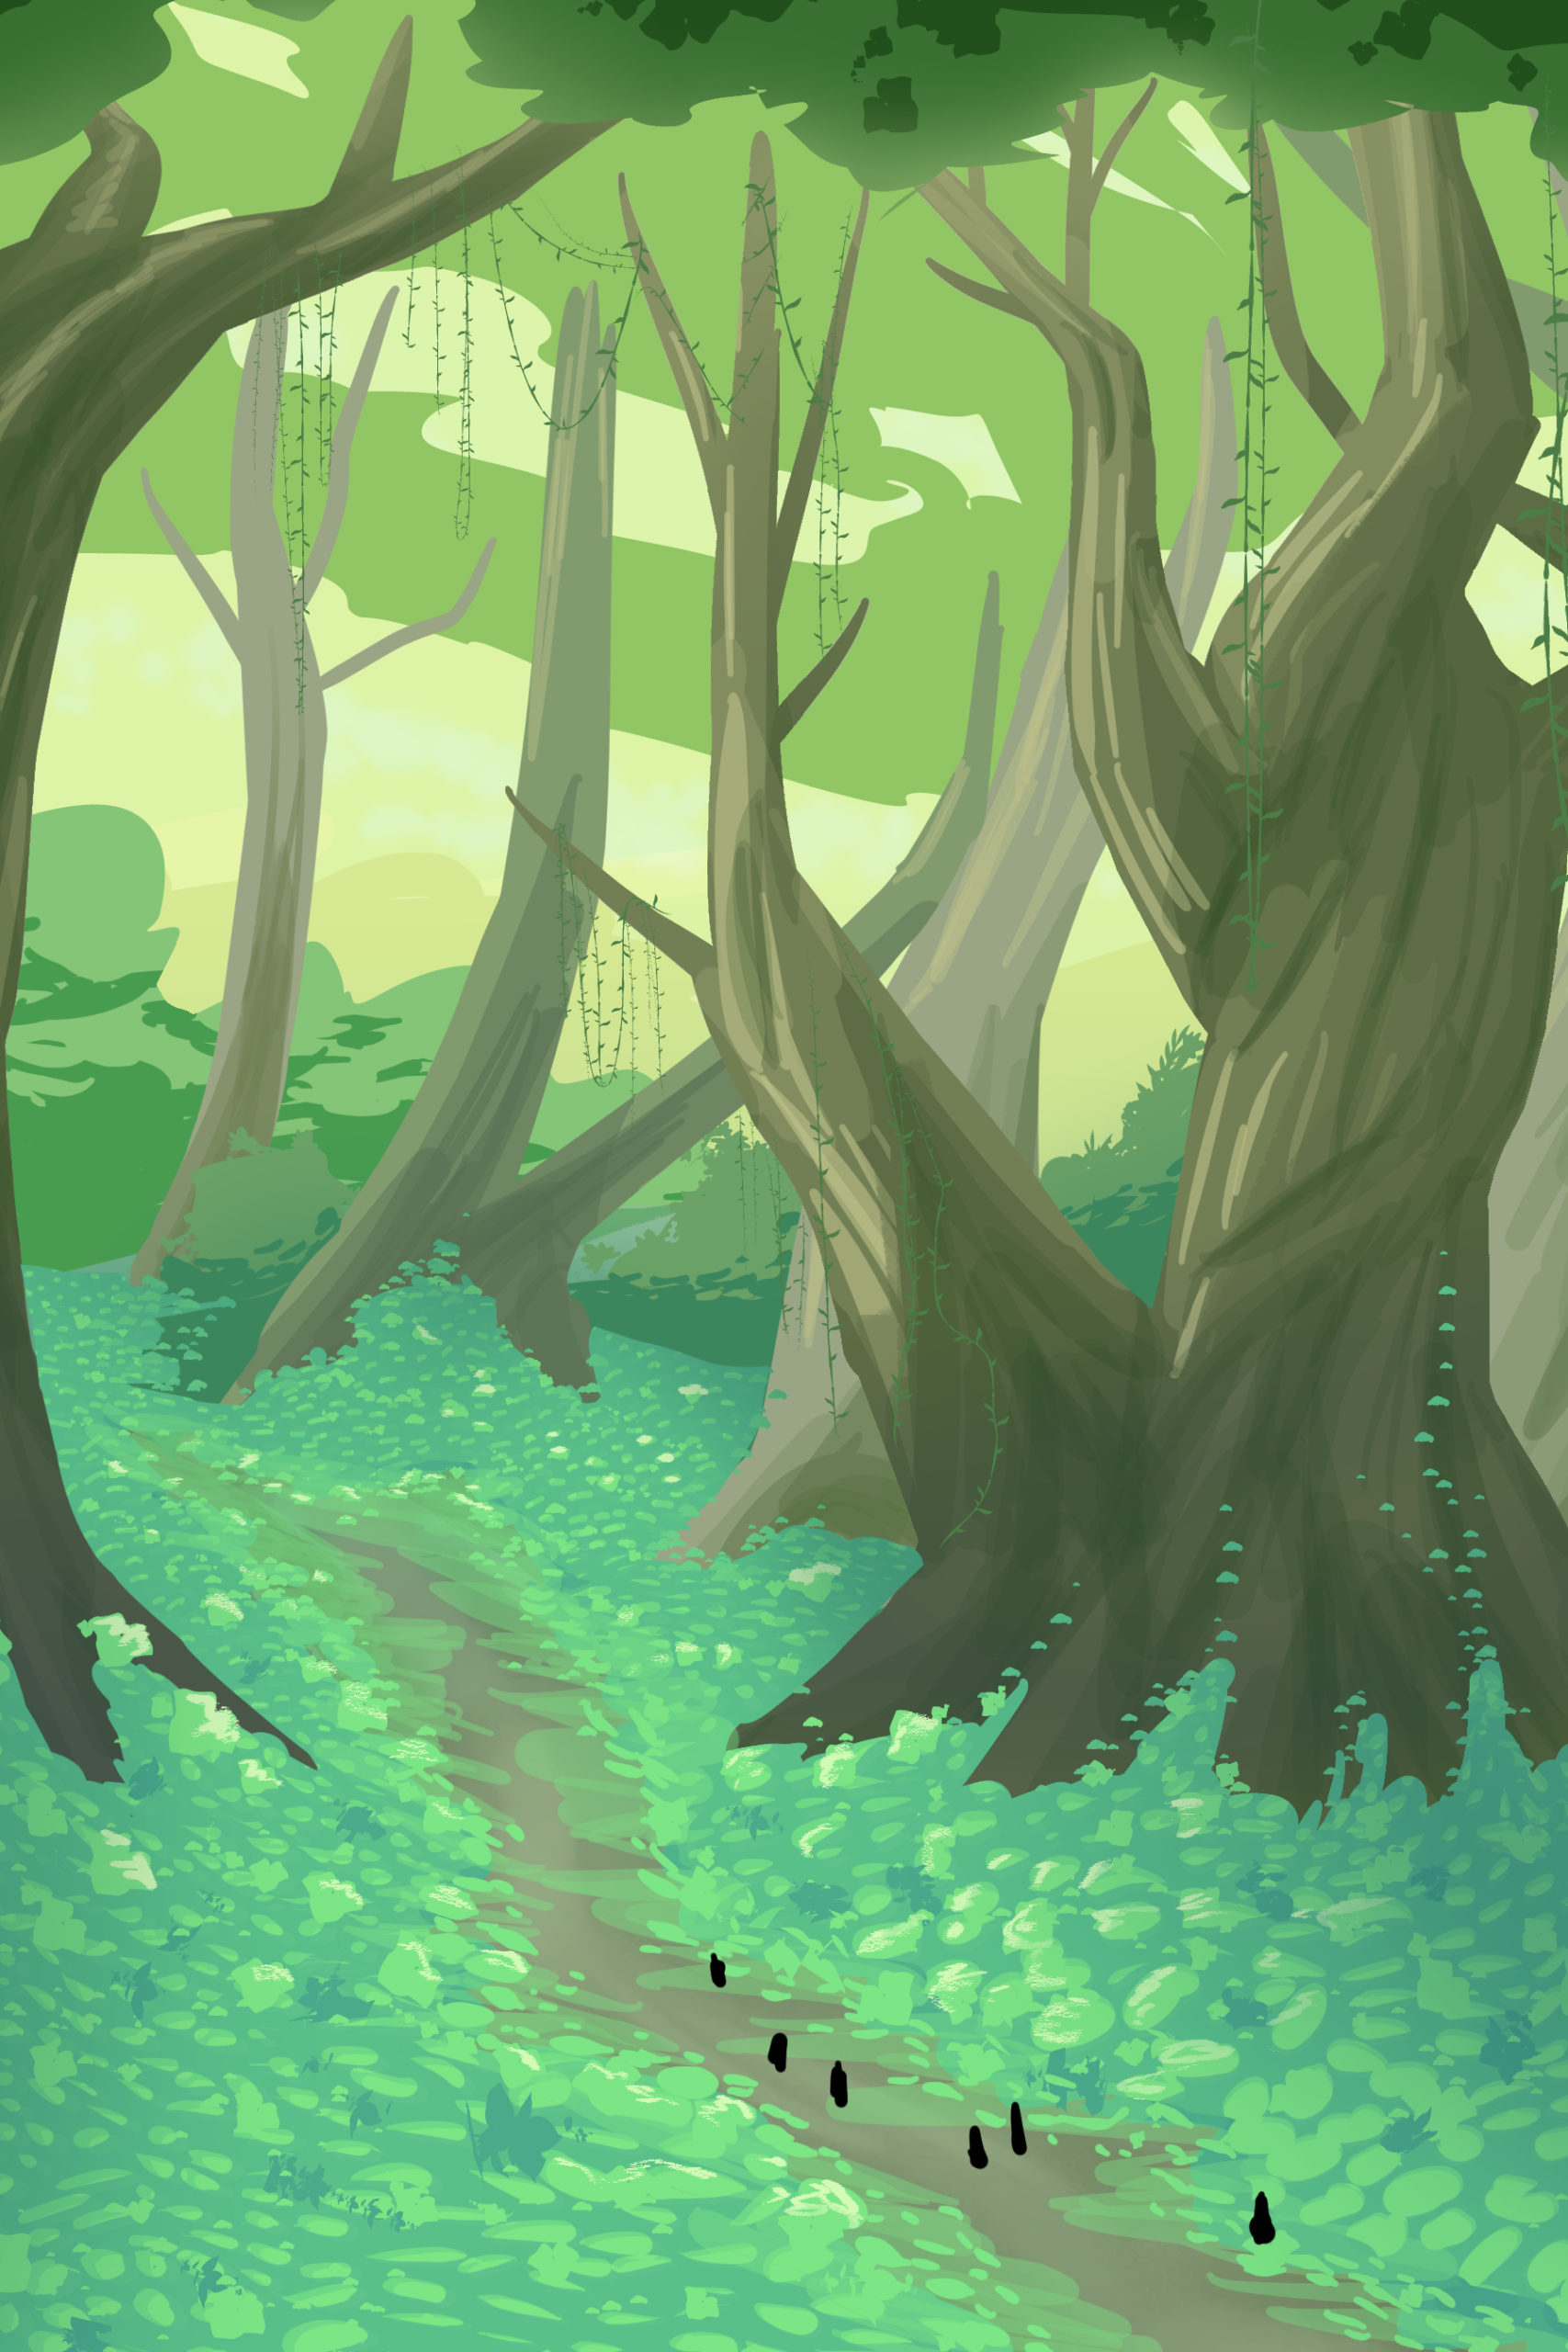 Funny how taking a step back to see the big picture puts everything in perspective.. like how you forgot to draw fallen trees on the ground. Or how the larger trees are missing cast shadows. Or--